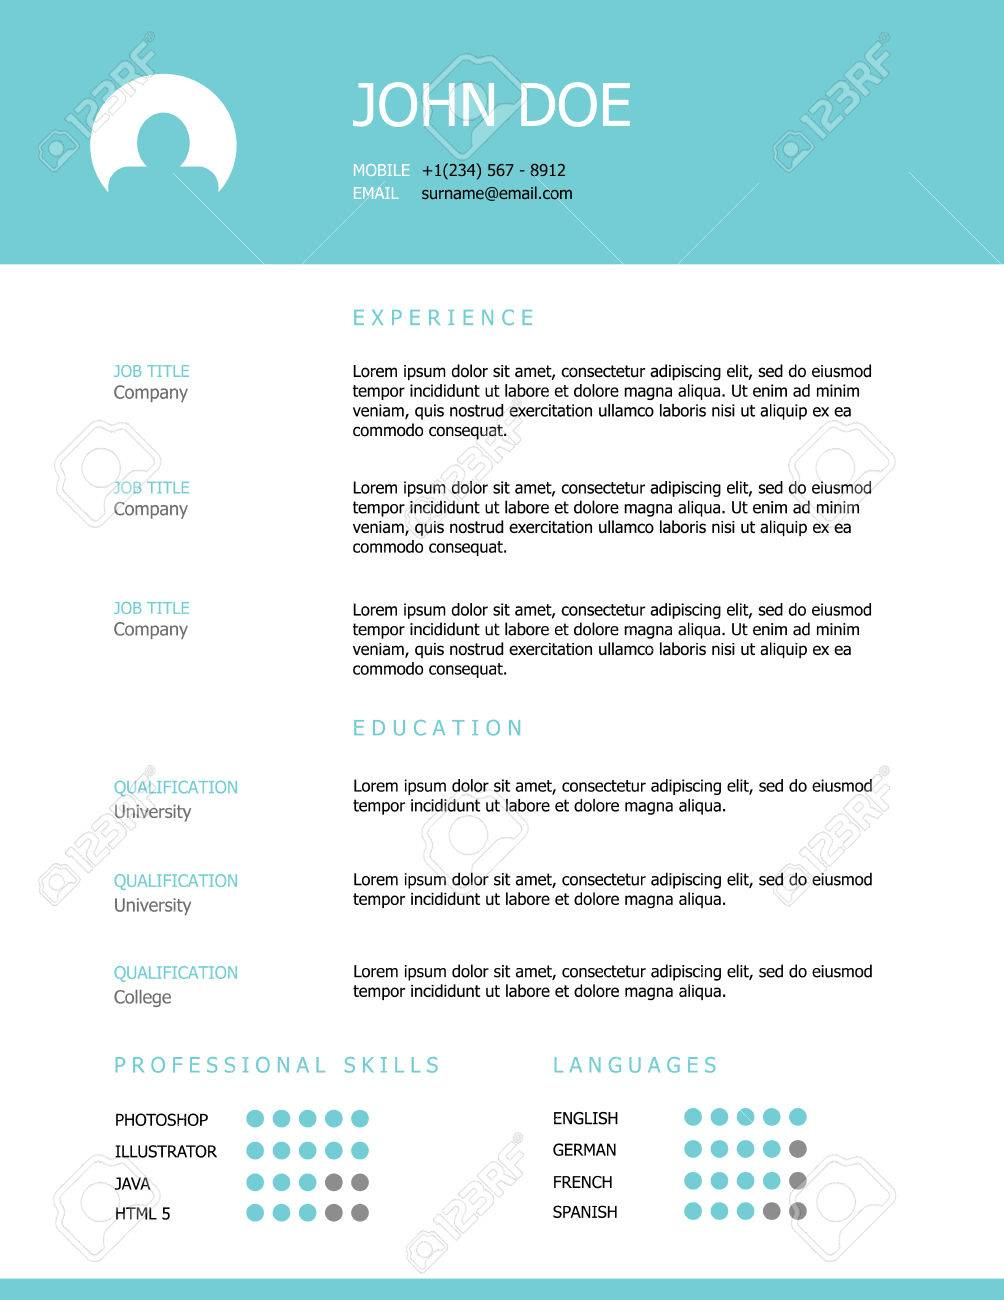 professional clean styled resume template design with a teal